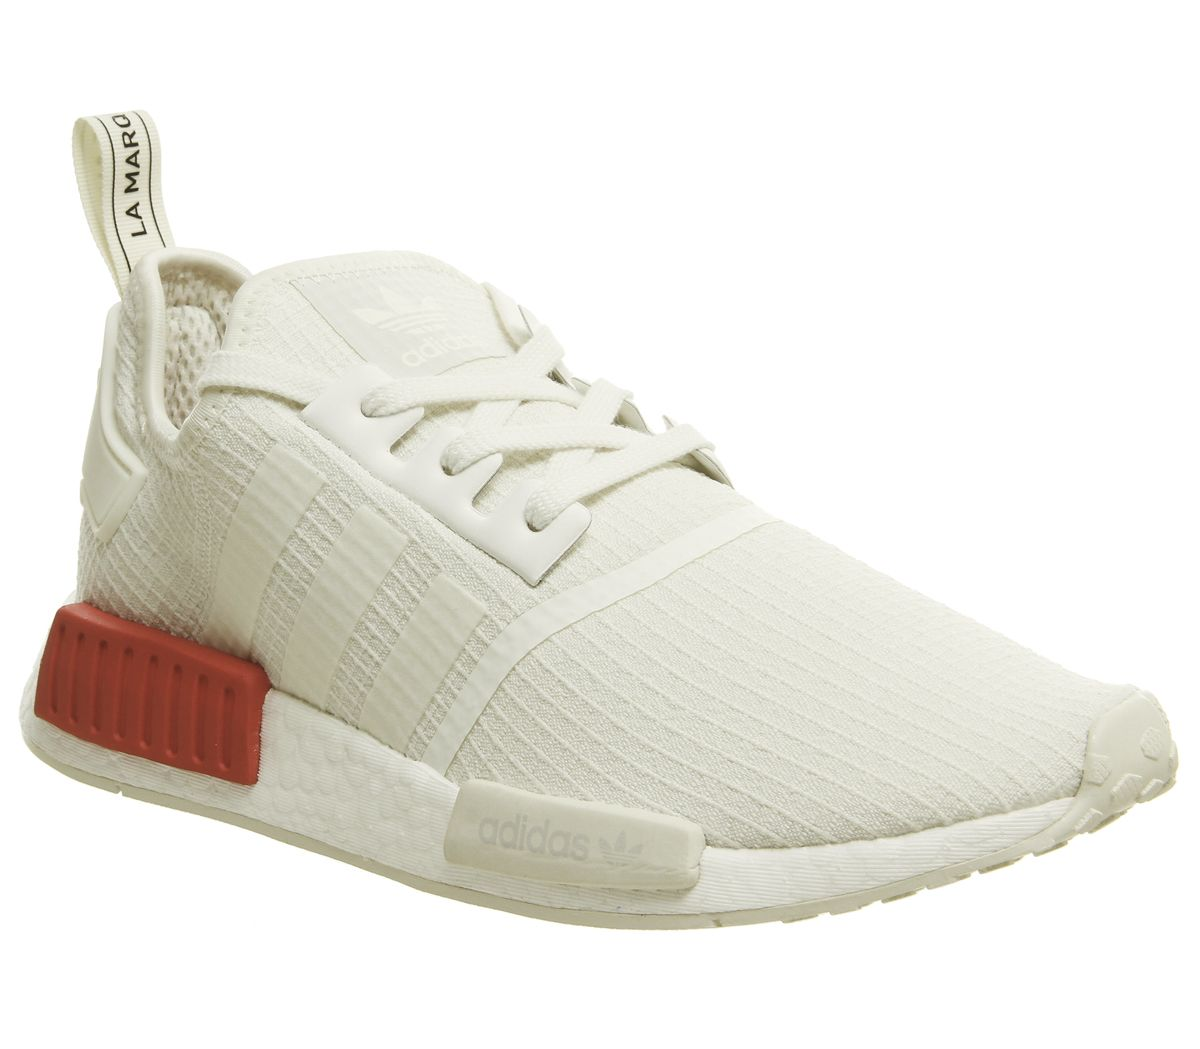 quality design 1badc b2843 Nmd R1 Trainers